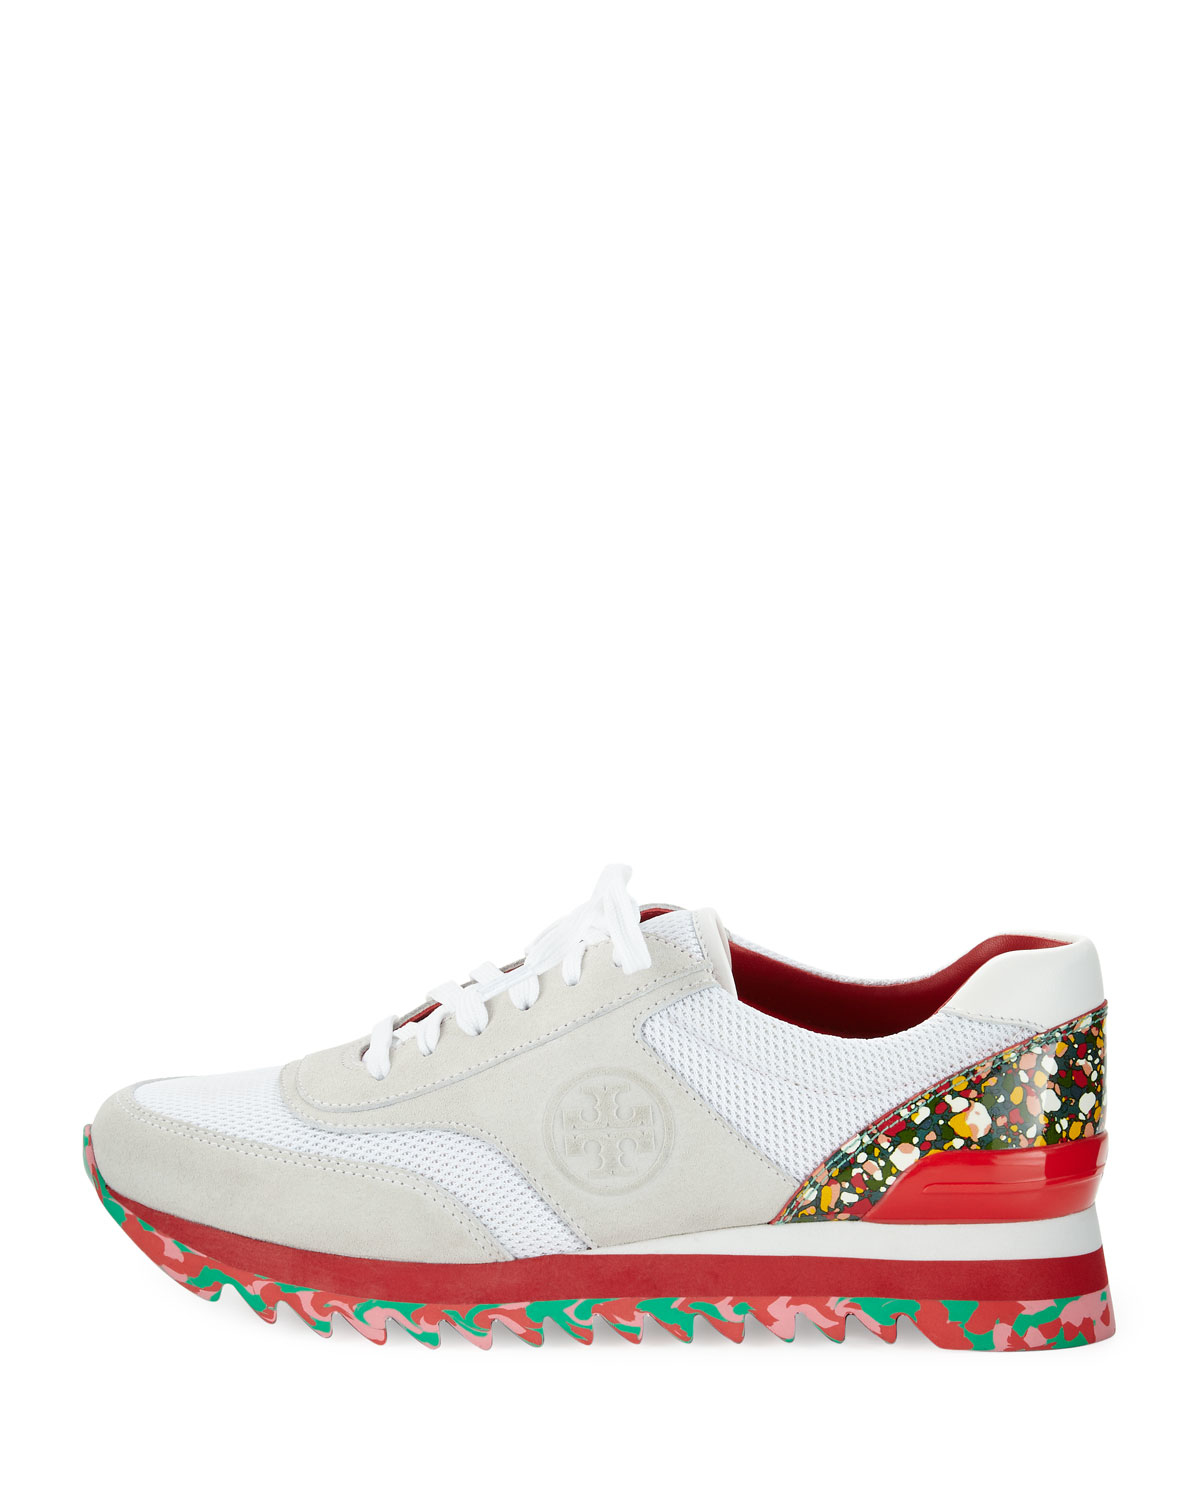 d66c7eace Lyst - Tory Burch Festival Sawtooth Logo Trainer Sneaker in White